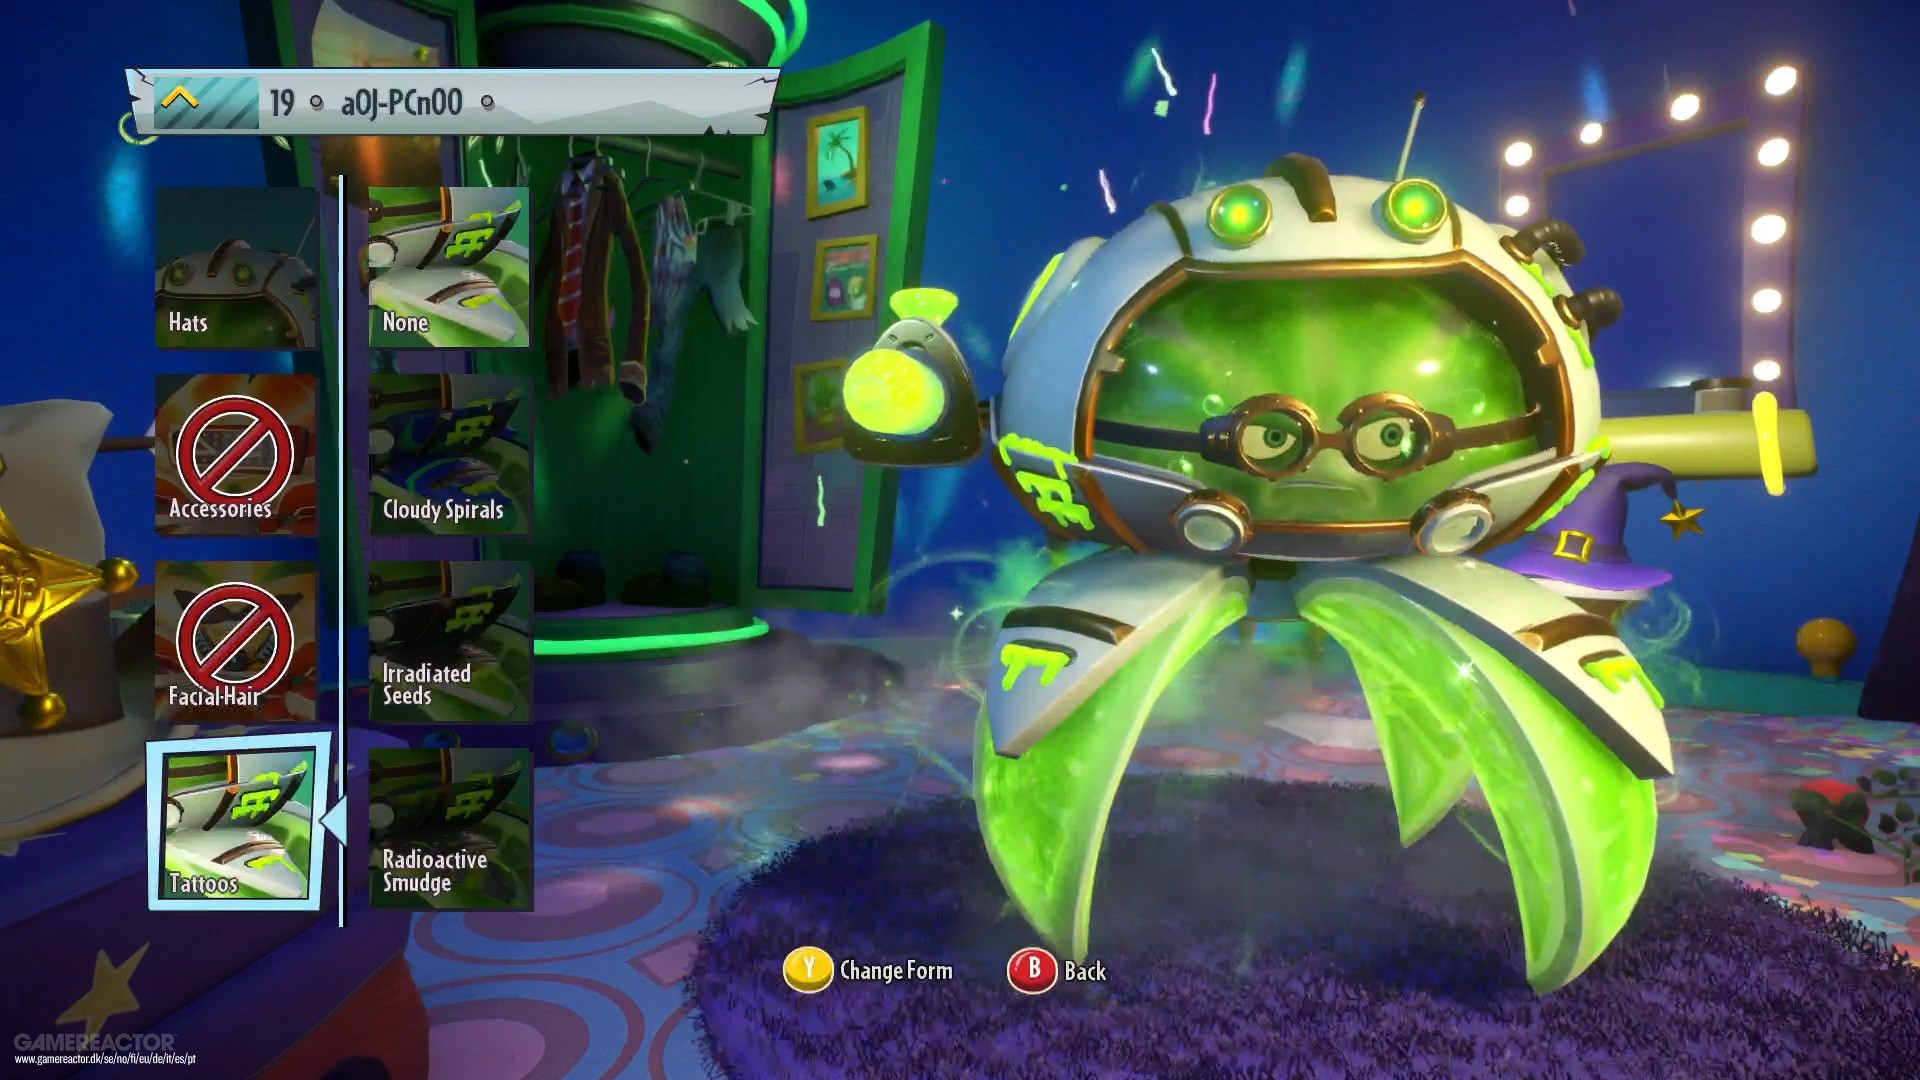 pvz review screens zombies for warfare vs garden windows xbox one central plants